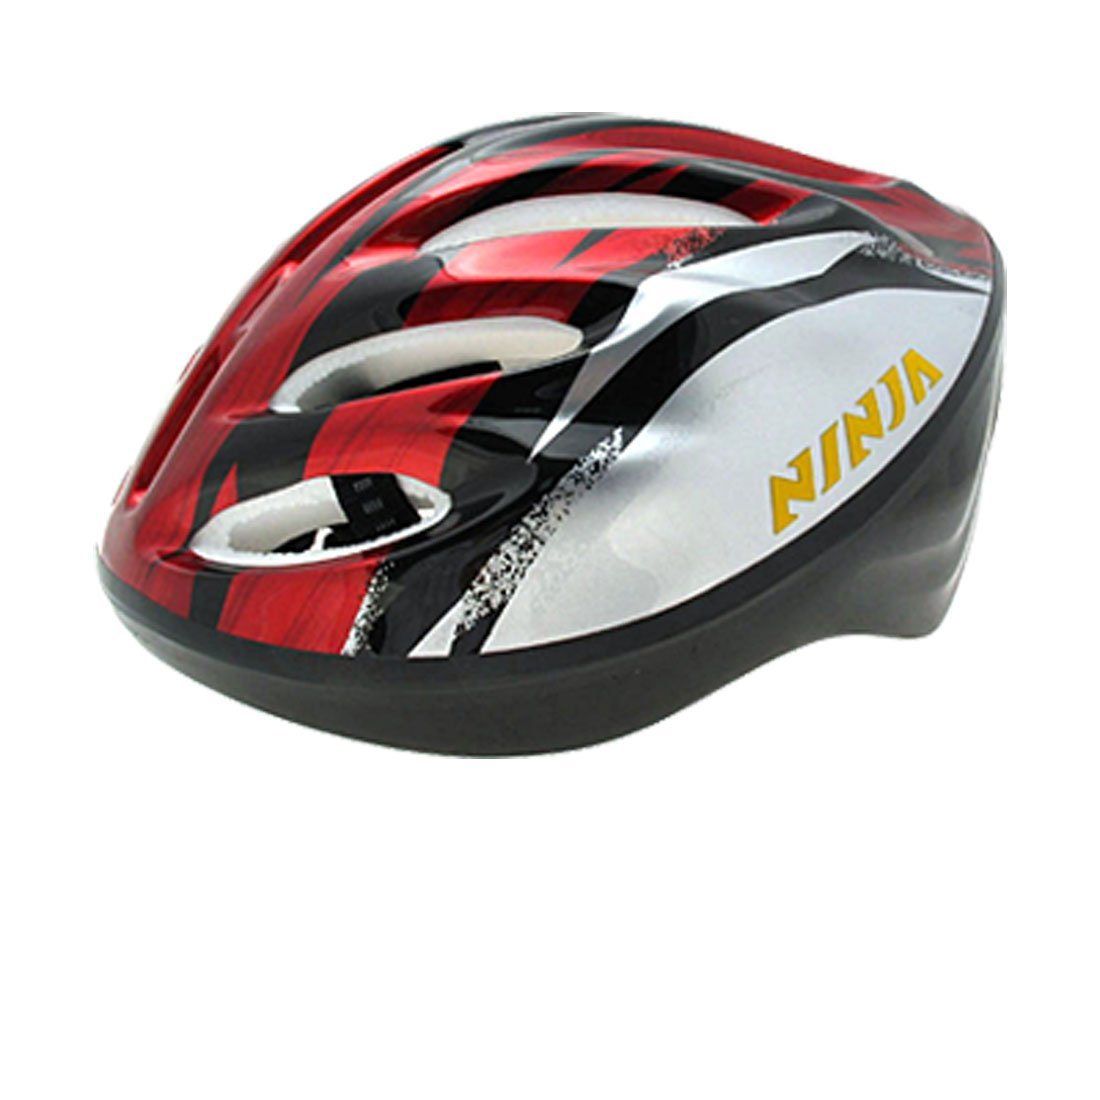 Red Como Bicycle Helmets